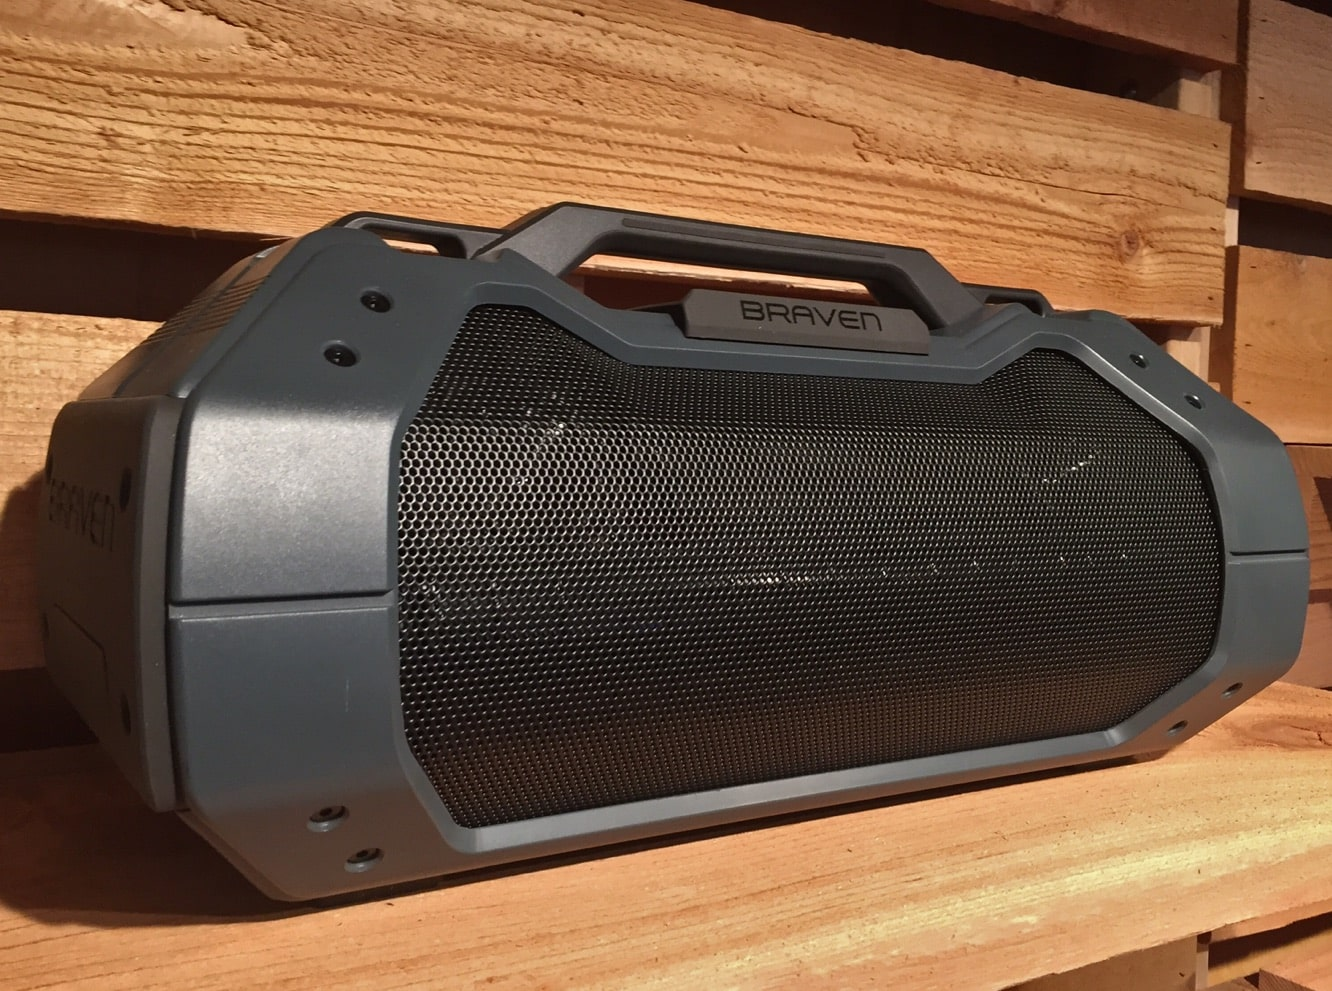 Braven intros new speakers at CES, including the BRV-XXL and BRV-BLADE LE